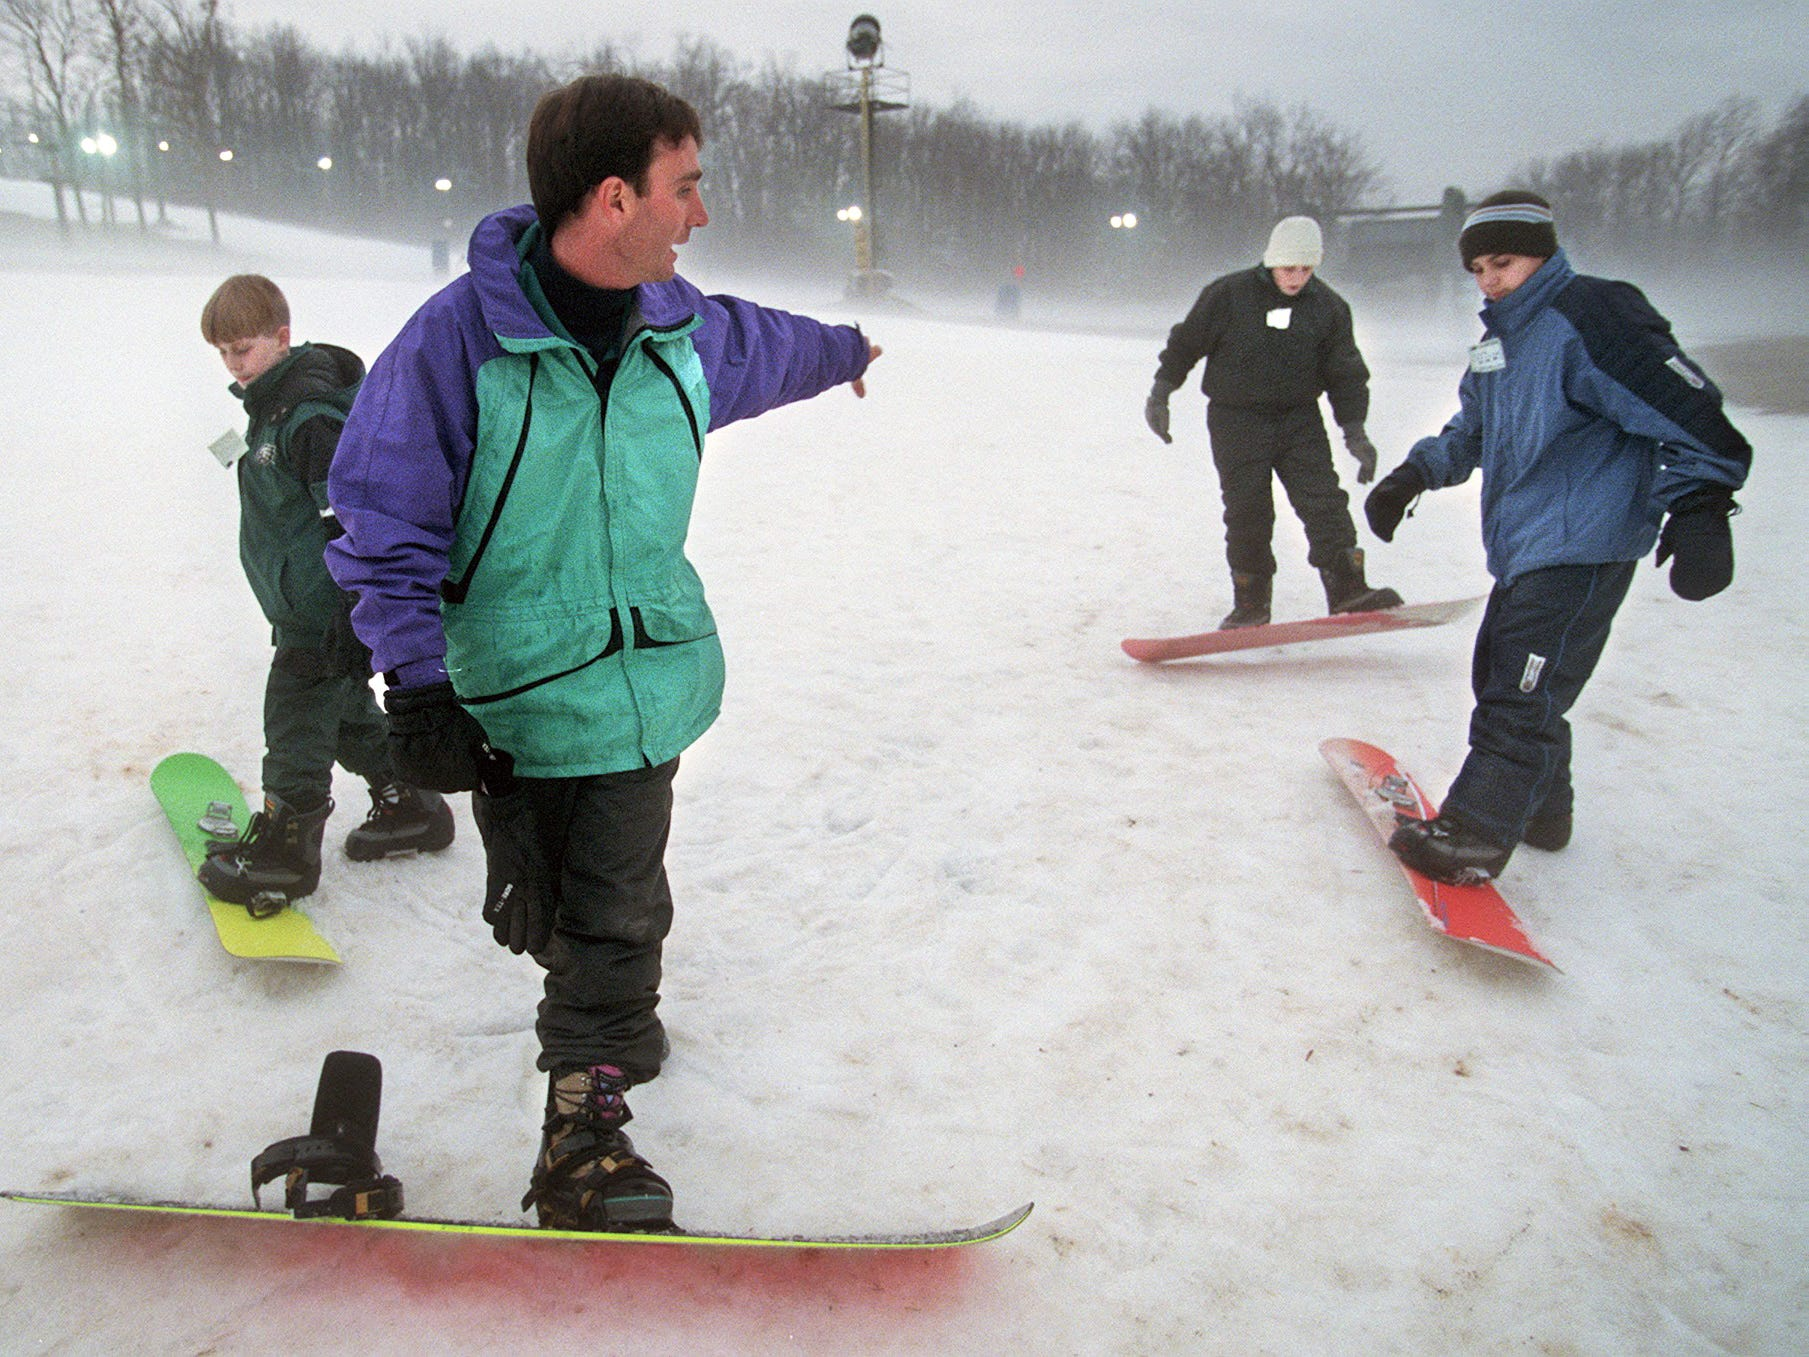 Ski School Instructor Vincent Farrell teaches snowboarders how to control their boards at Ski Roundtop on January 6, 1998.